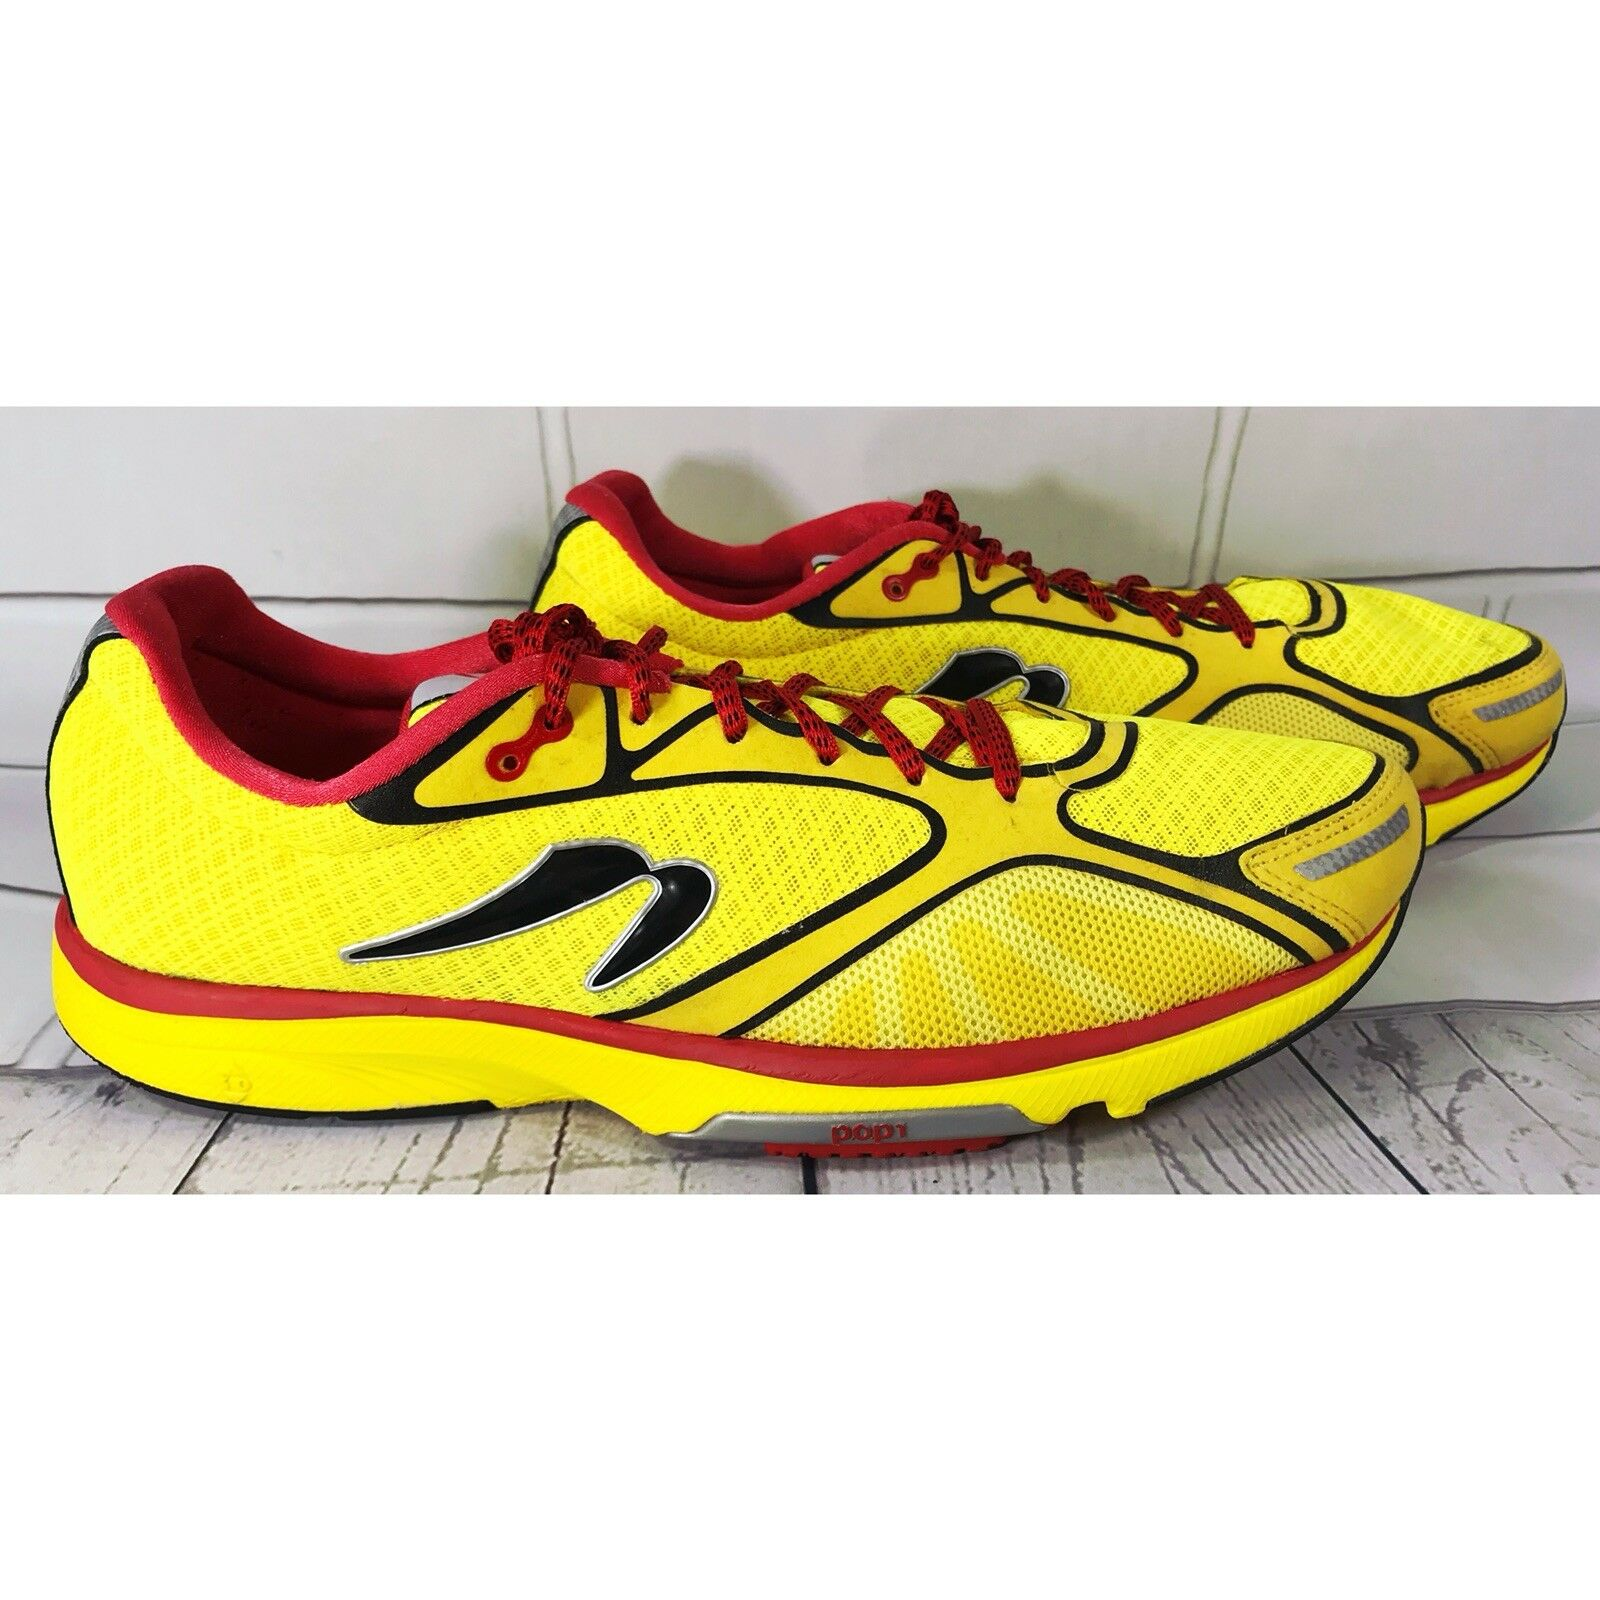 Newton Gravity III 3 POP1 Yellow Red Synthetic Lightweight Running Shoes Size 14